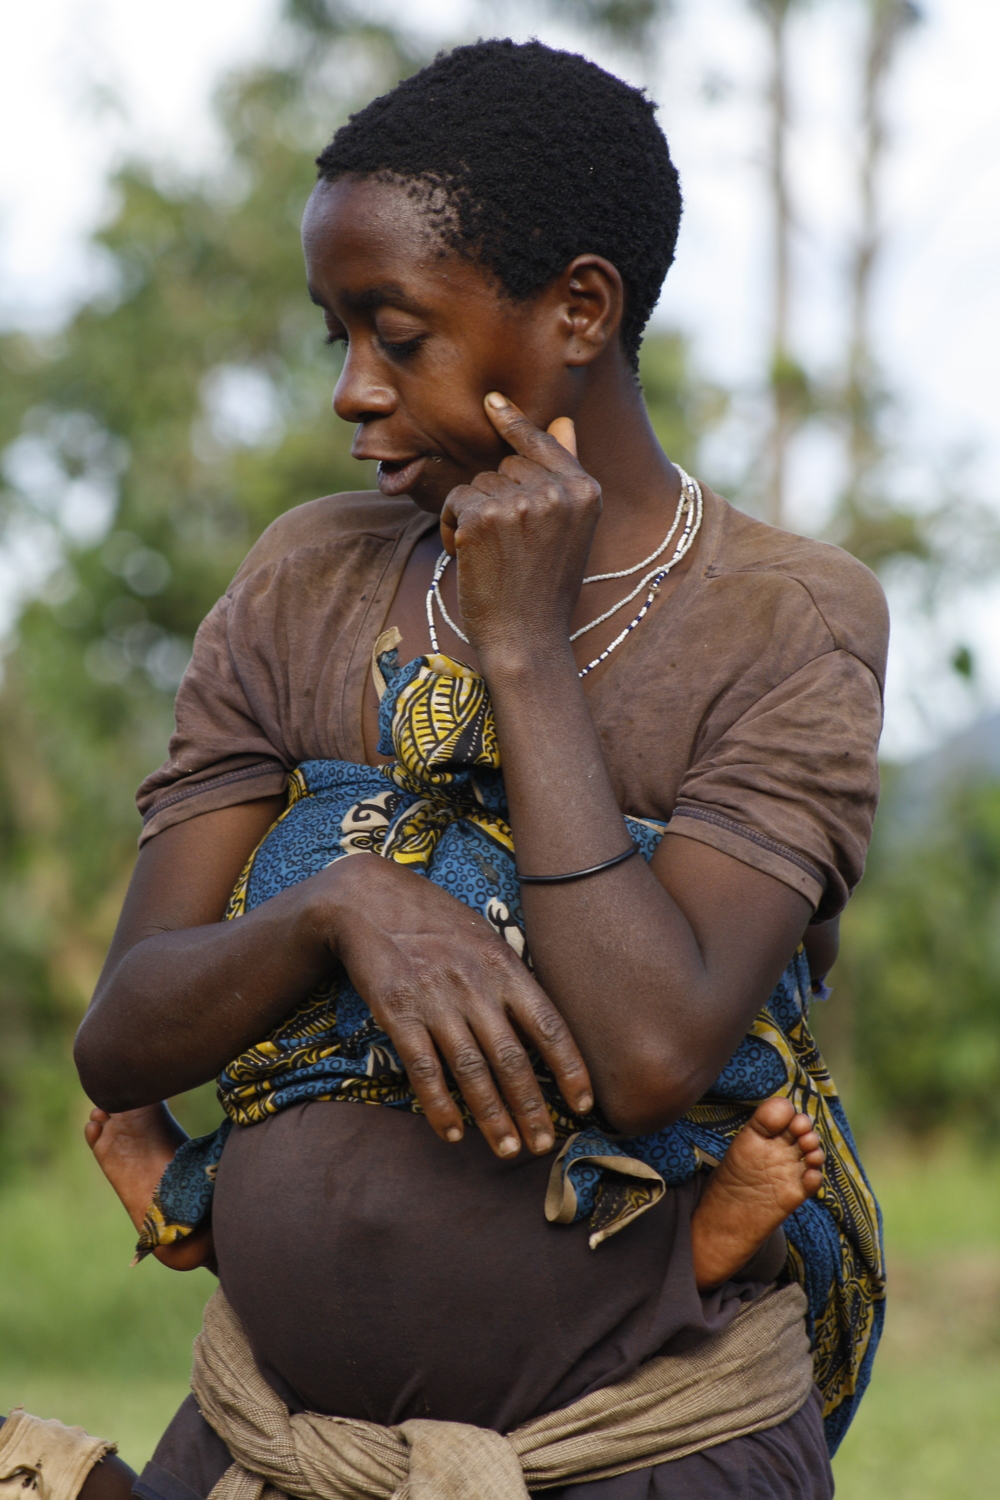 Batwa woman and child in Kanungu, Uganda